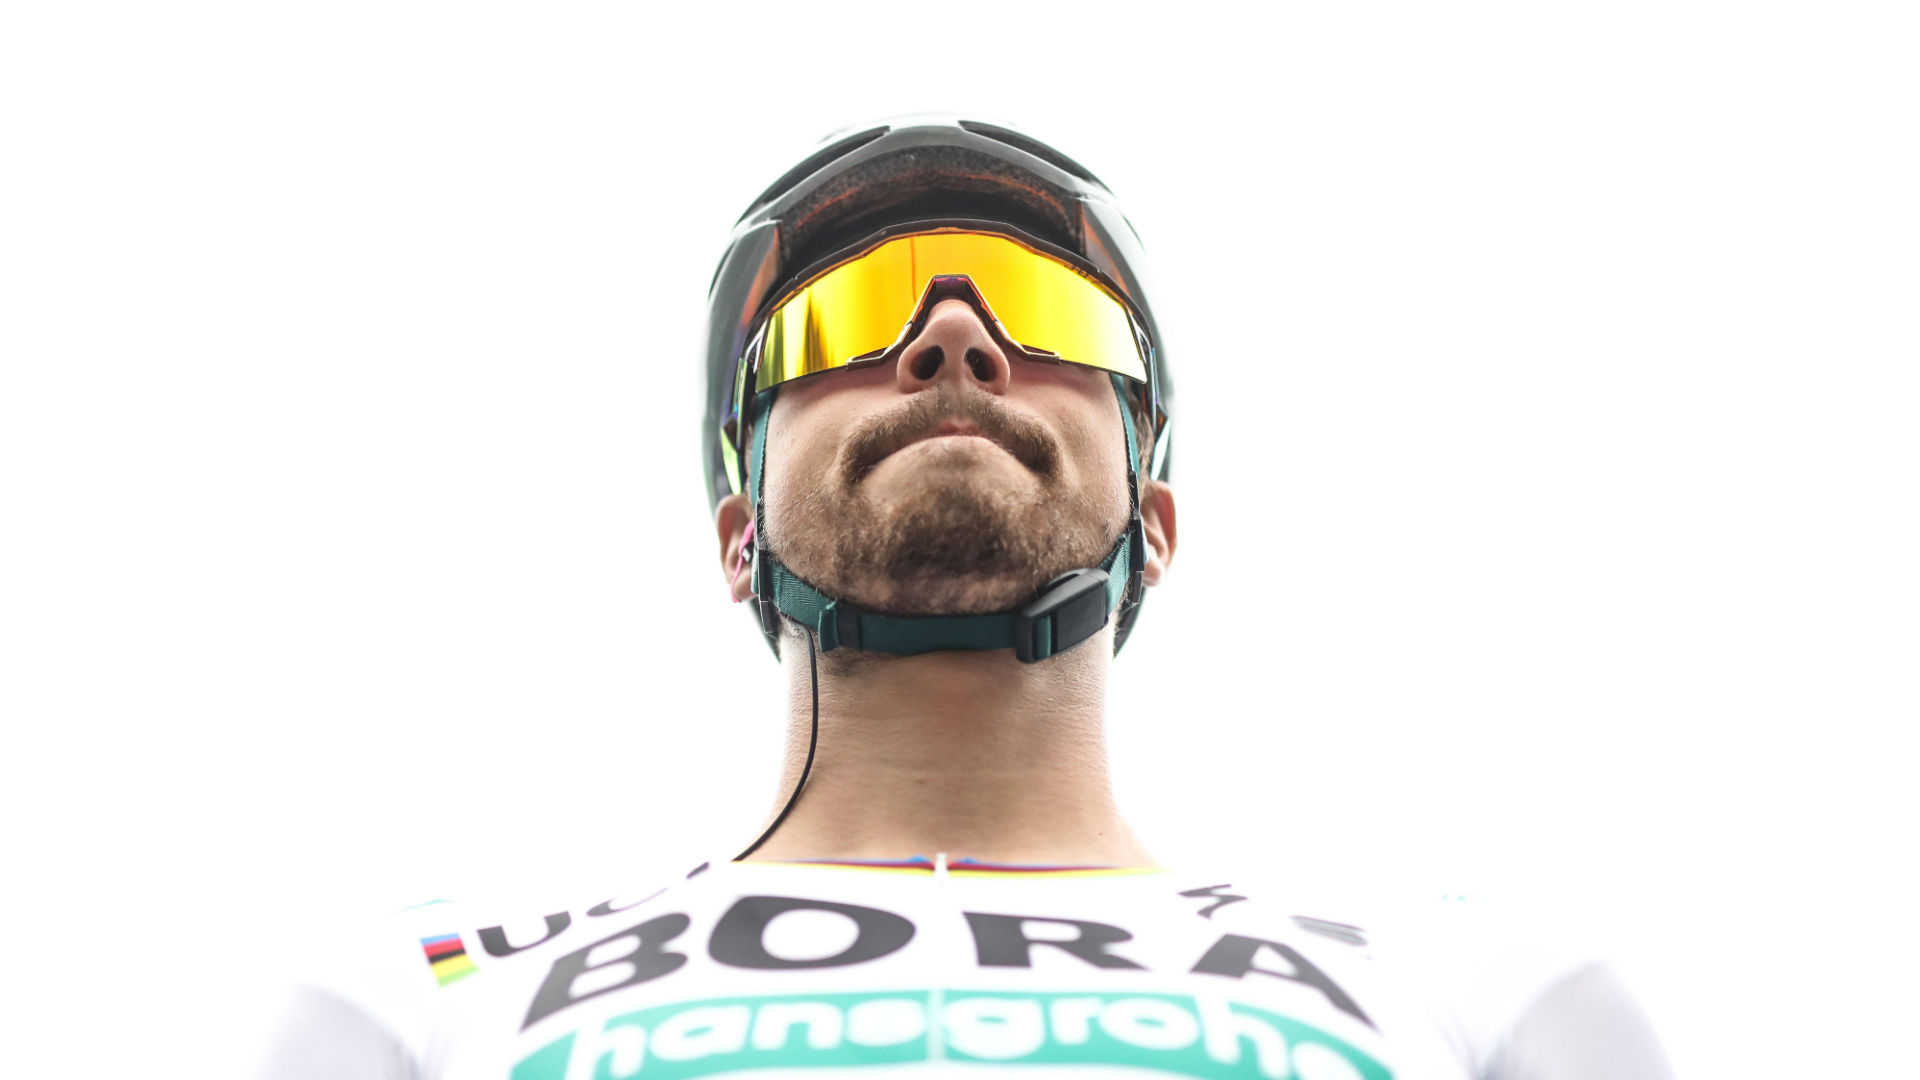 World road race champion Peter Sagan has signed a new deal until 2021 with Bora-Hansgrohe ahead of his title defence in Innsbruck.